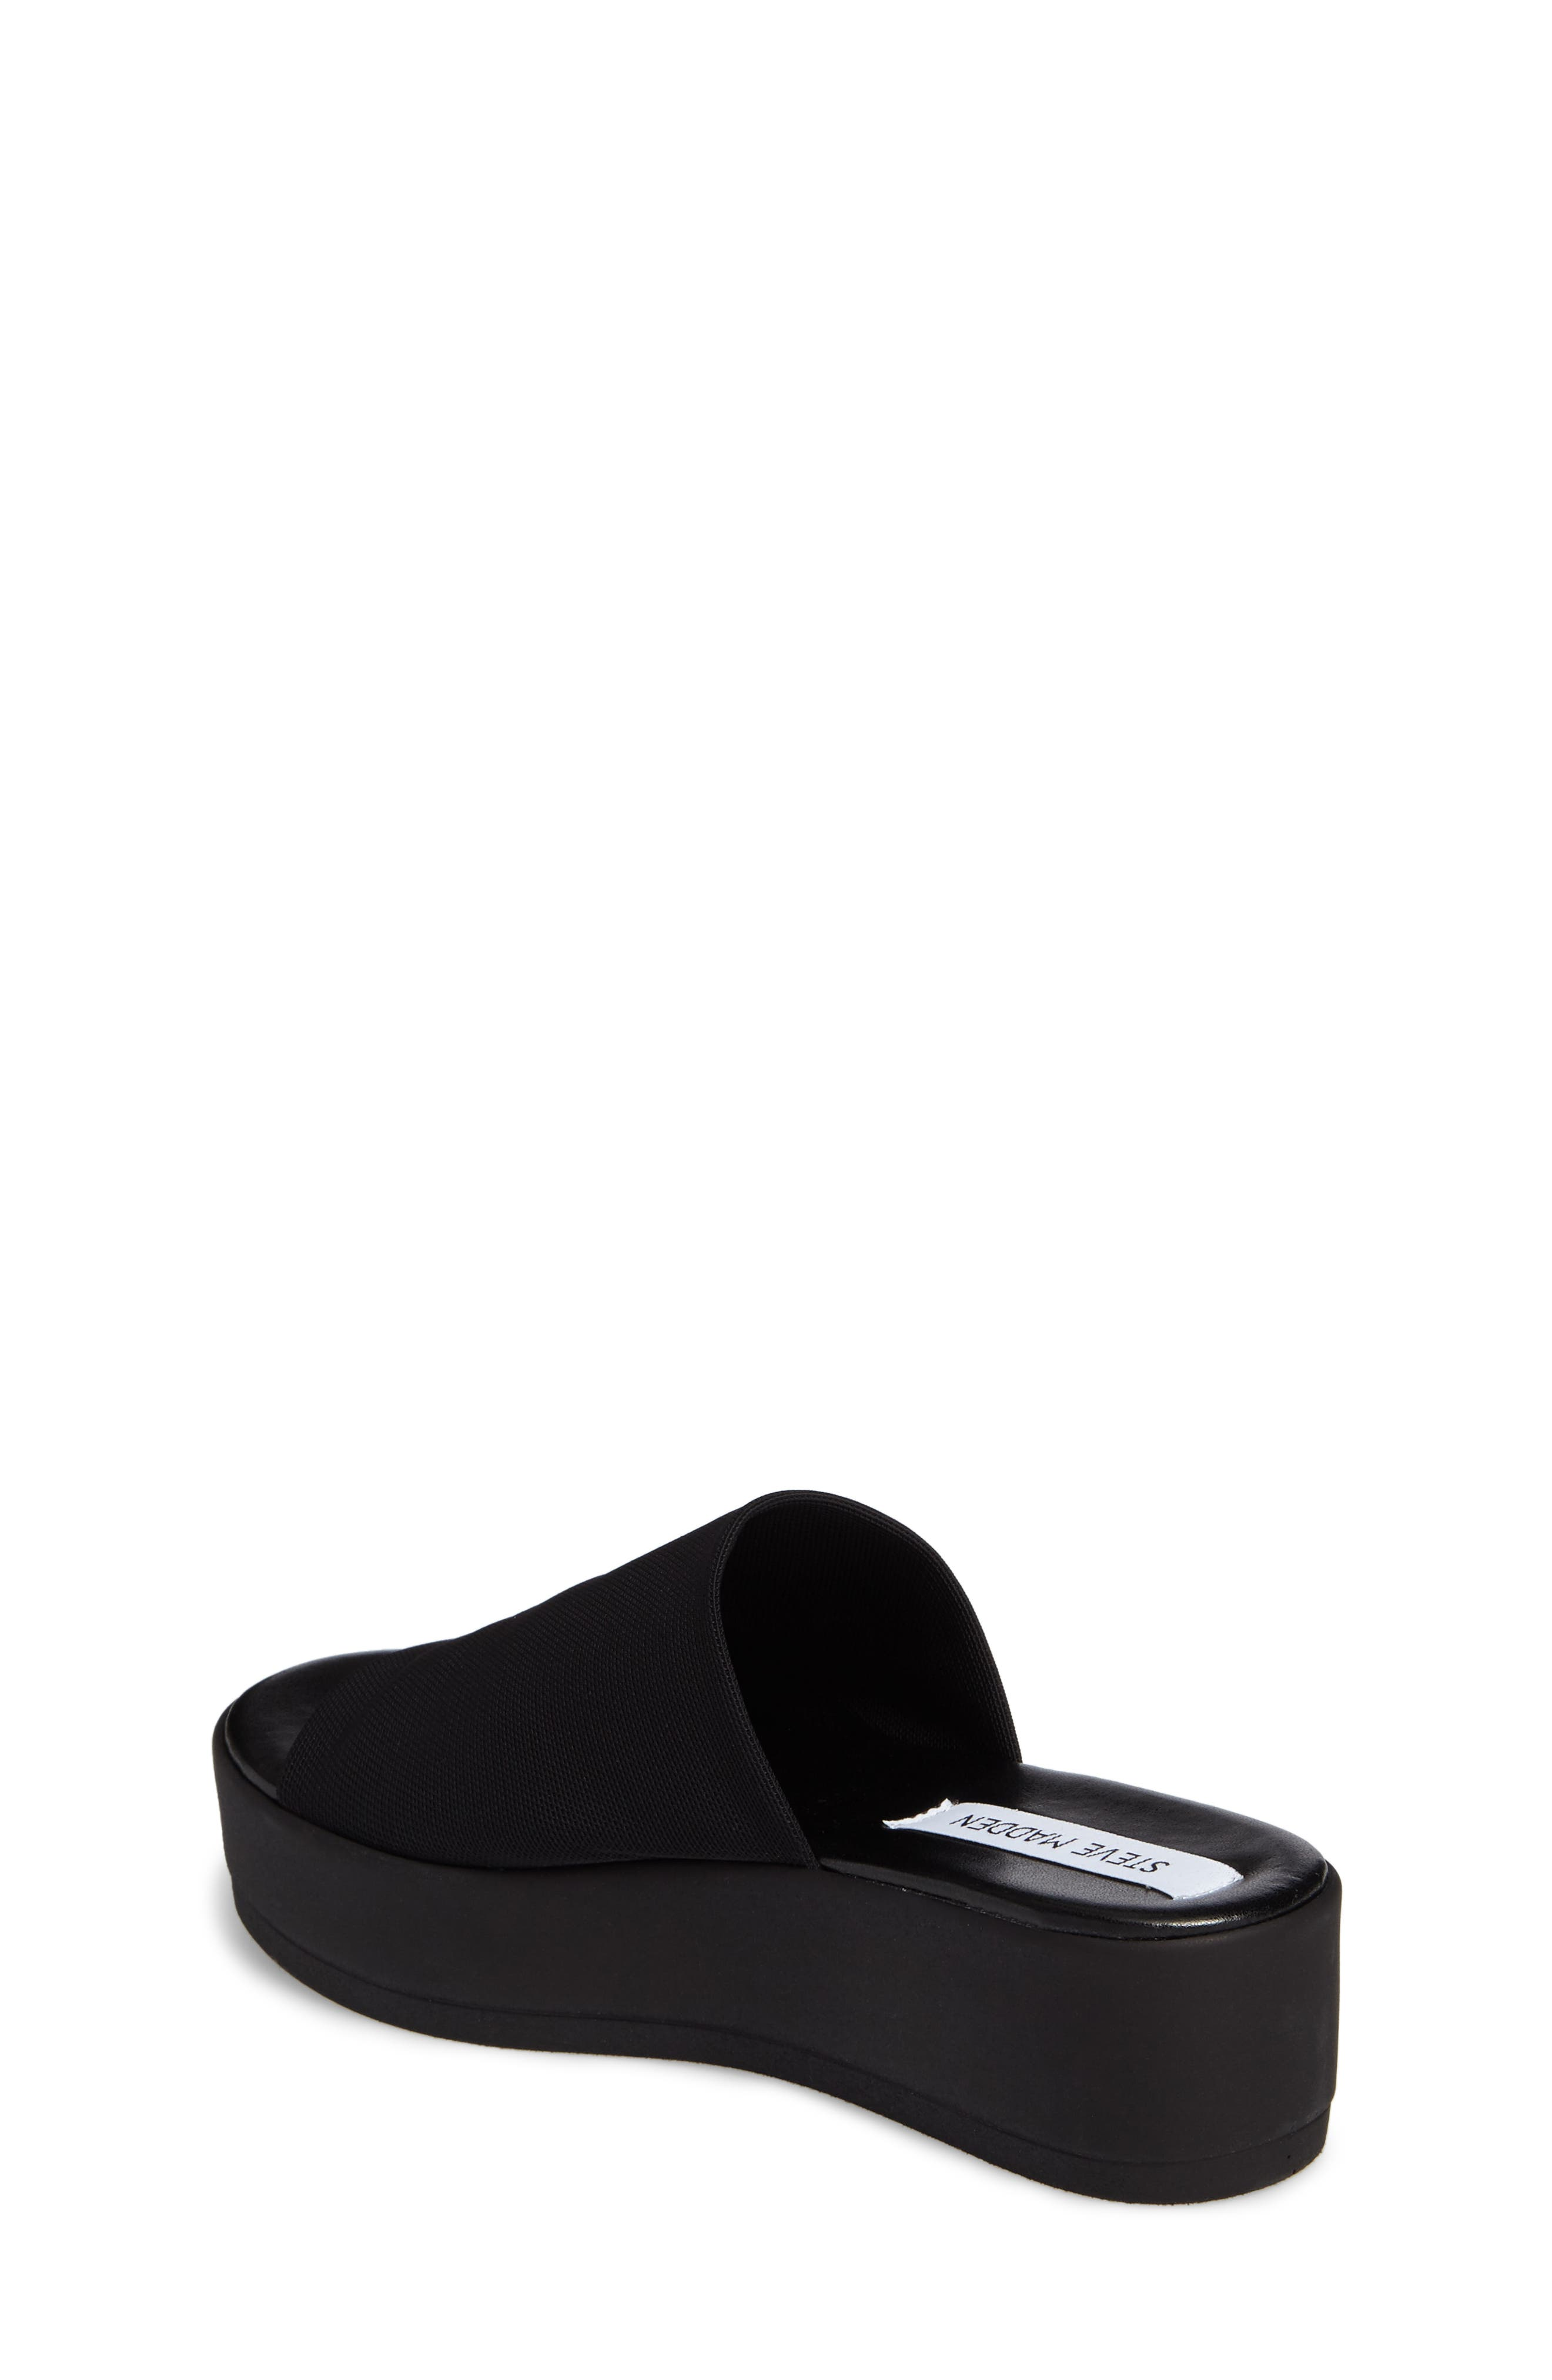 Jslinky Platform Slide Sandal,                             Alternate thumbnail 2, color,